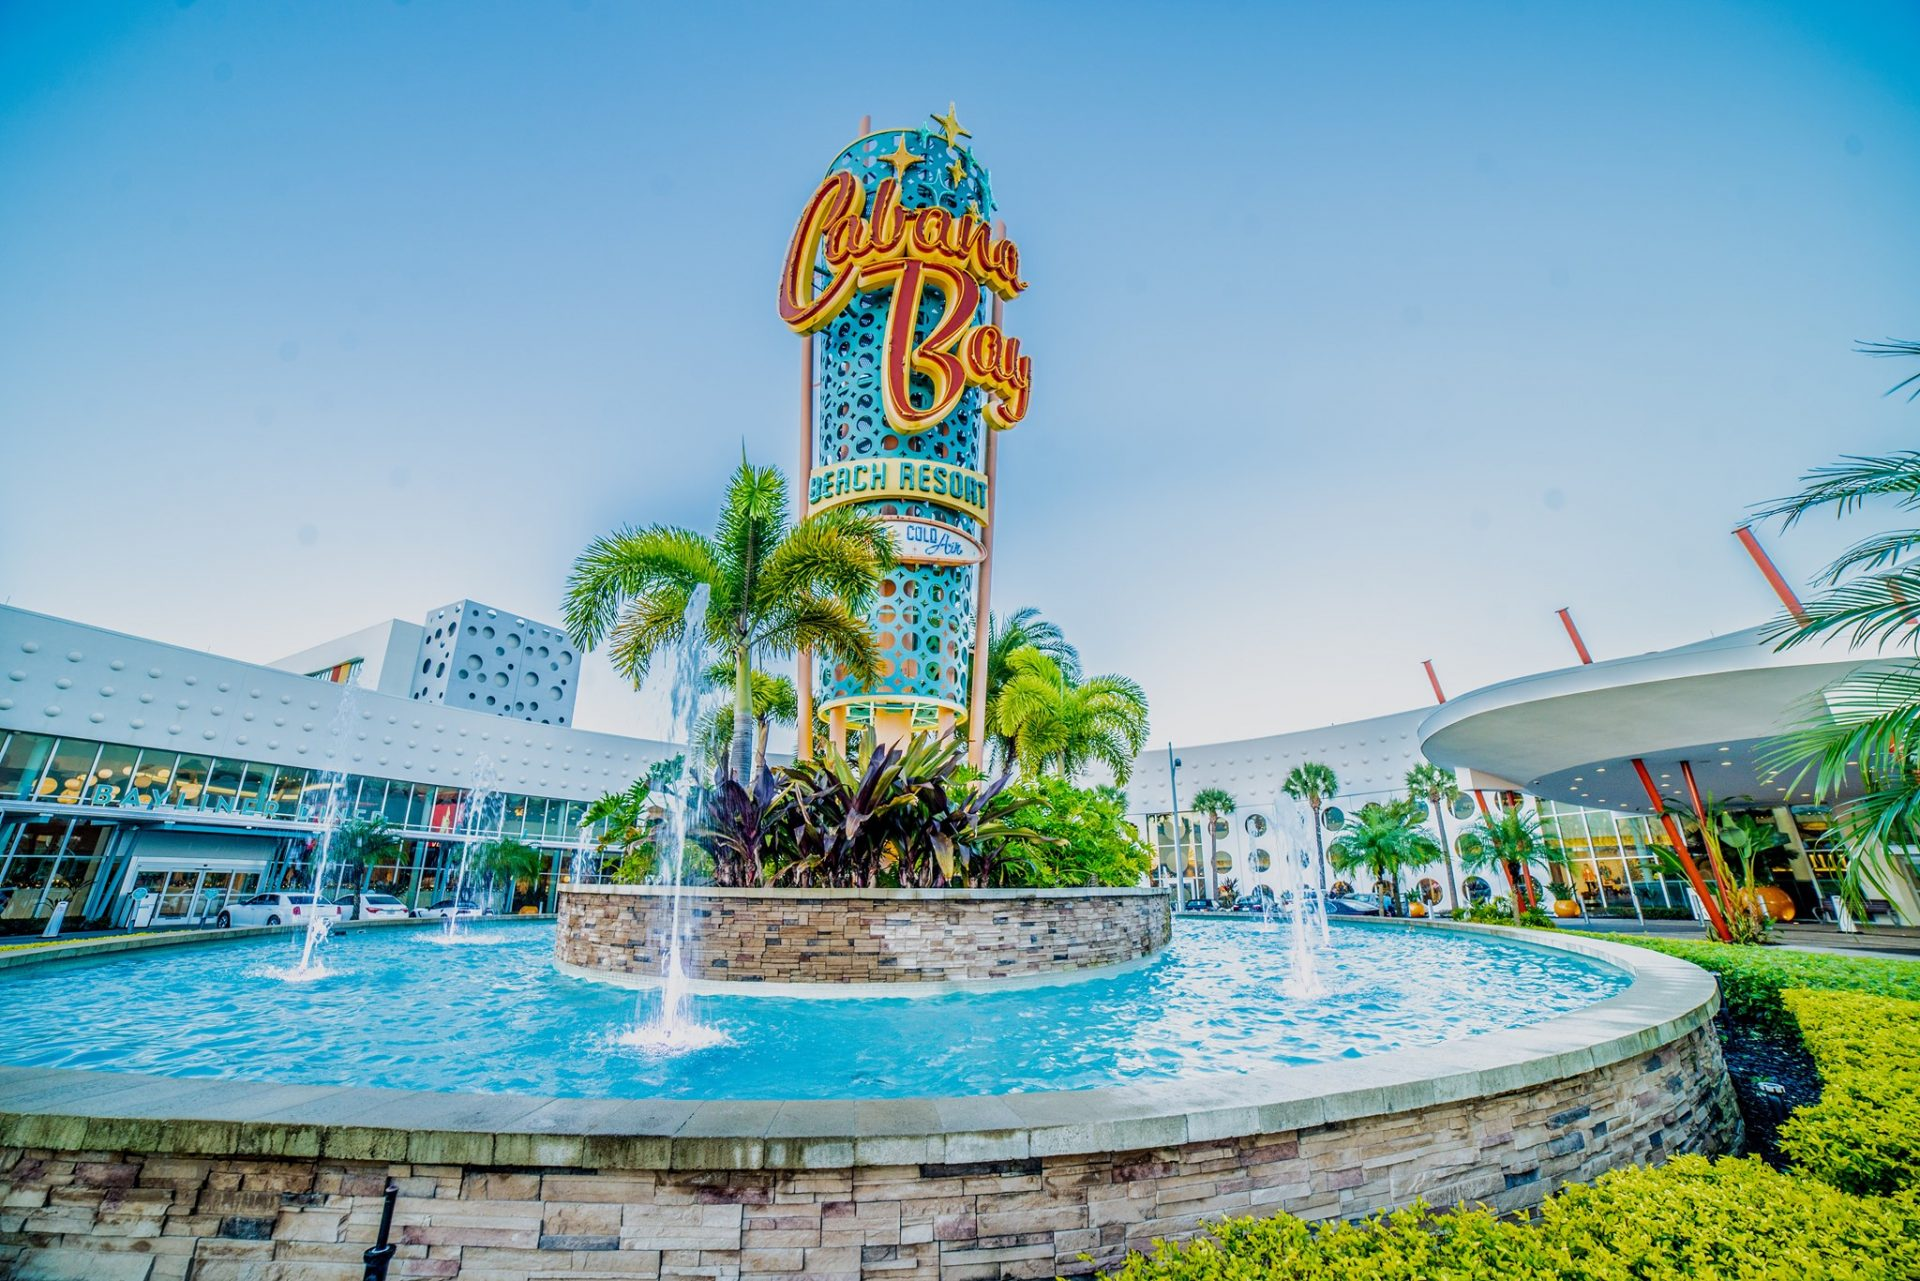 Cabana Bay Beach Resort Staycation